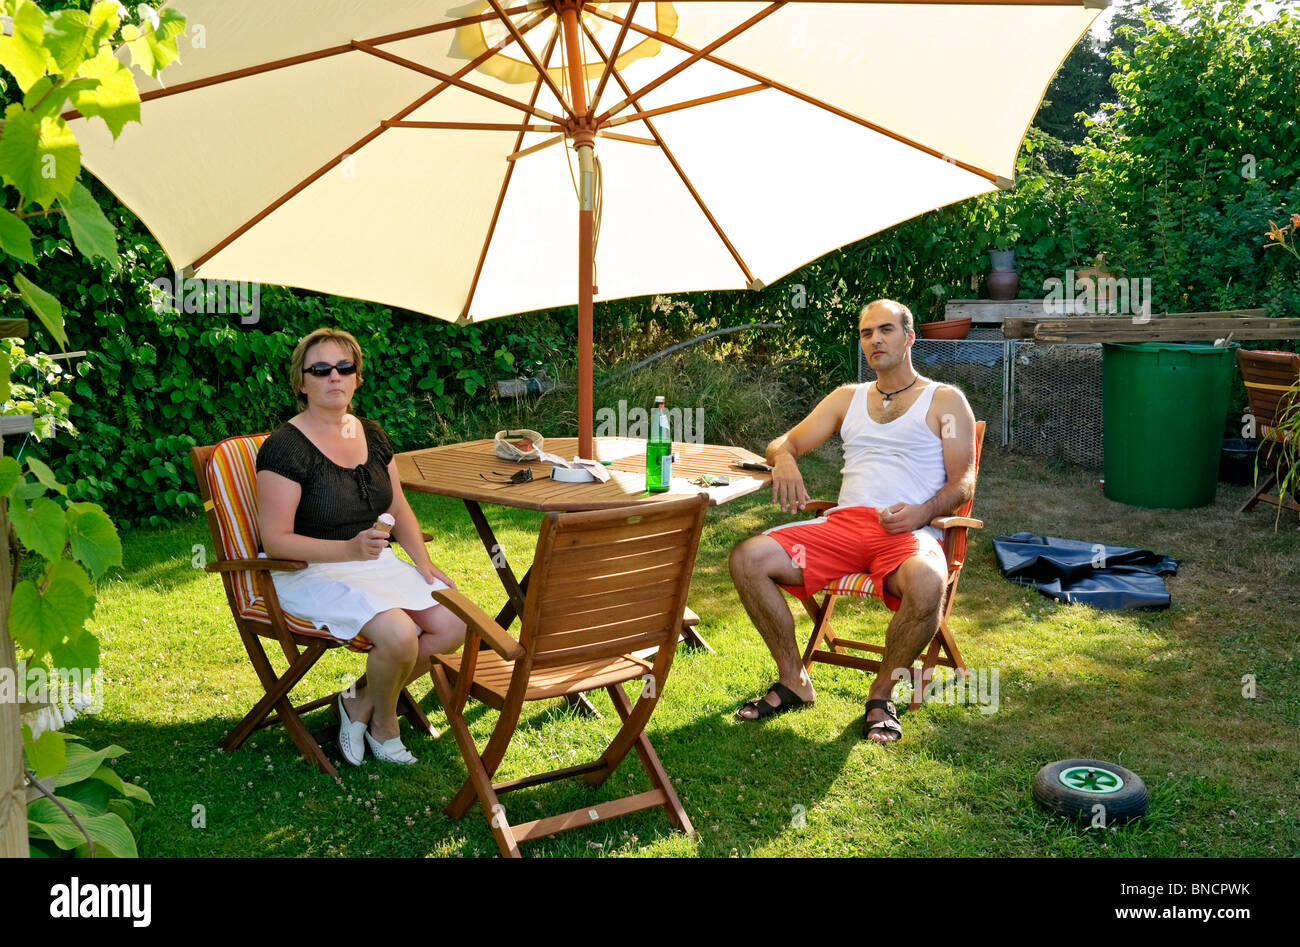 Man & woman 30s relaxing under parasol in garden. - Stock Image